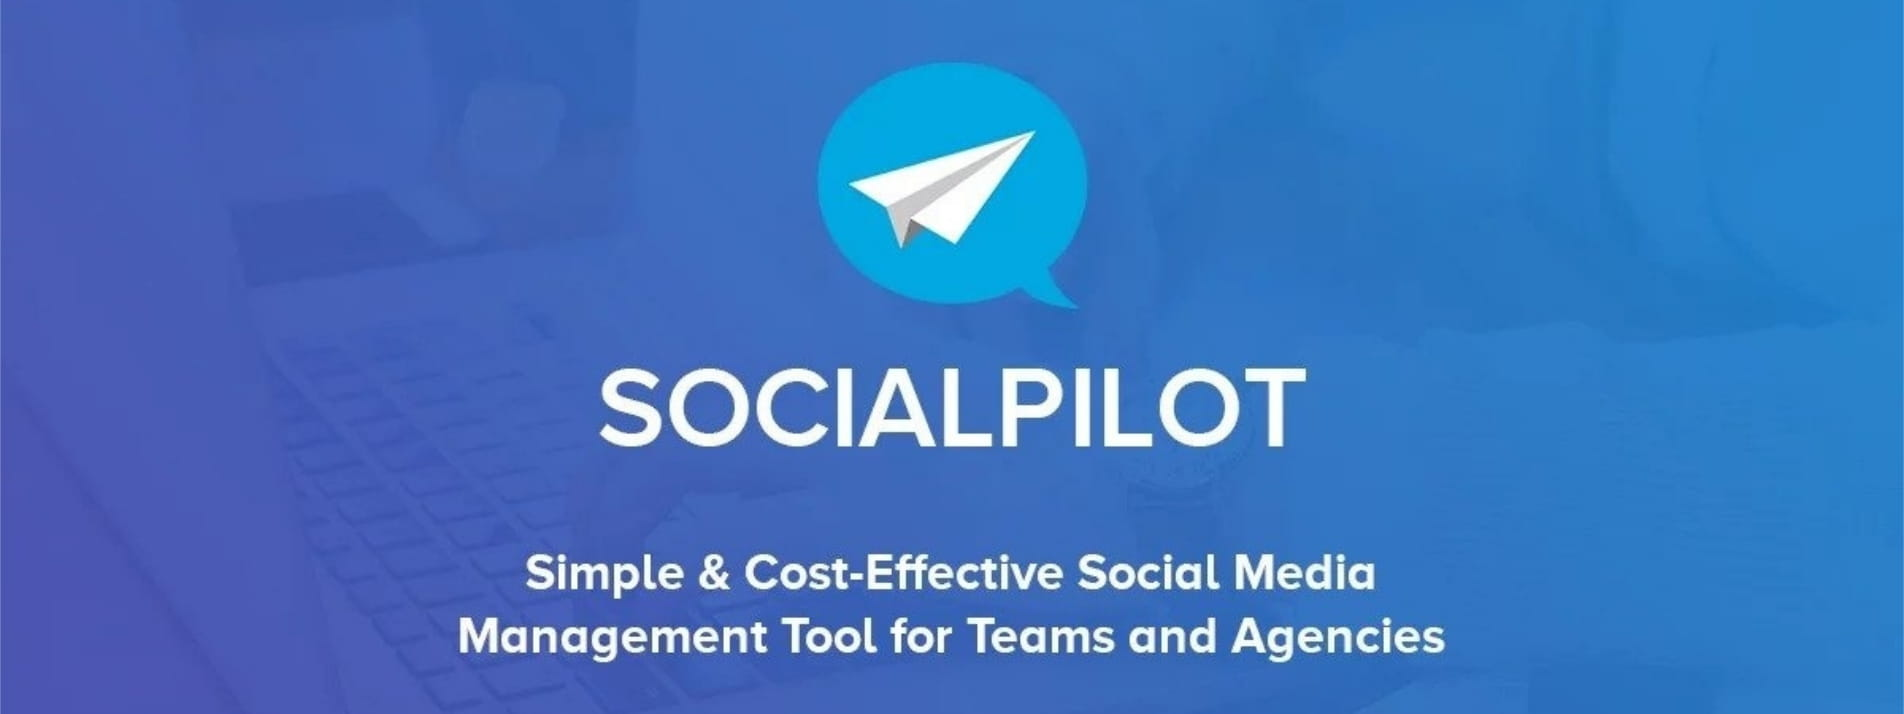 Ofertas Marketing Social Pilot covid 19